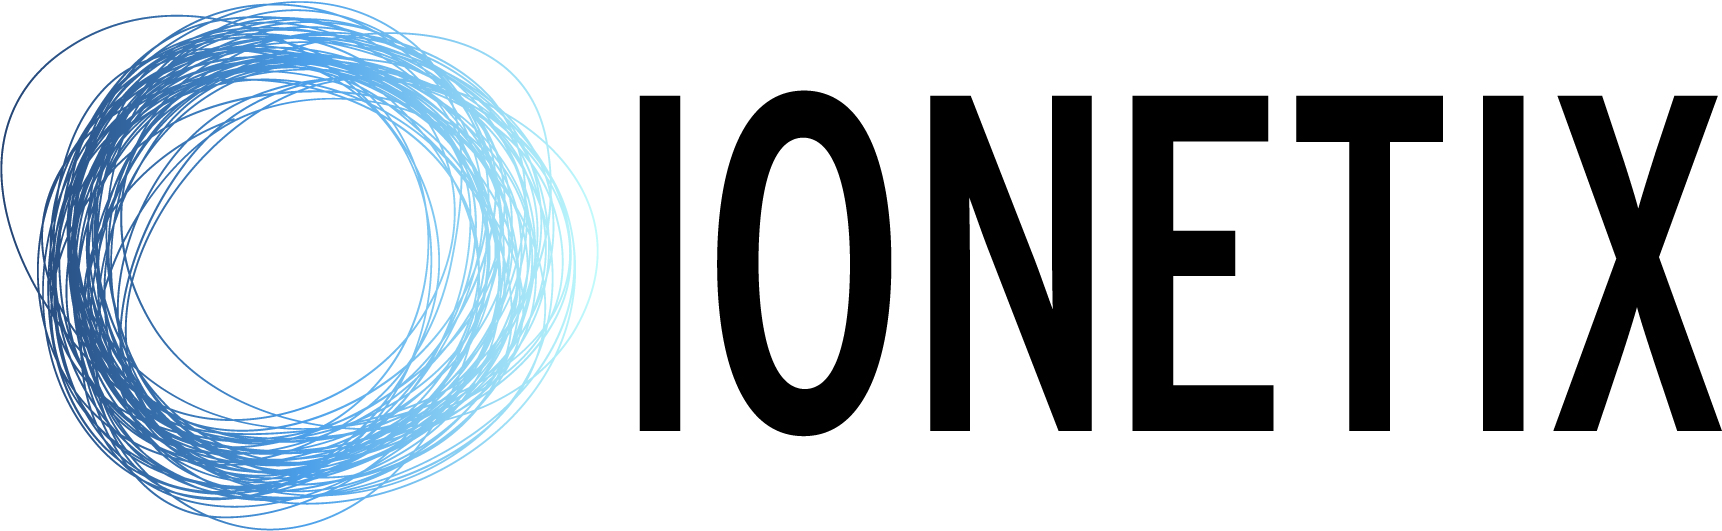 Ionetix Corporation